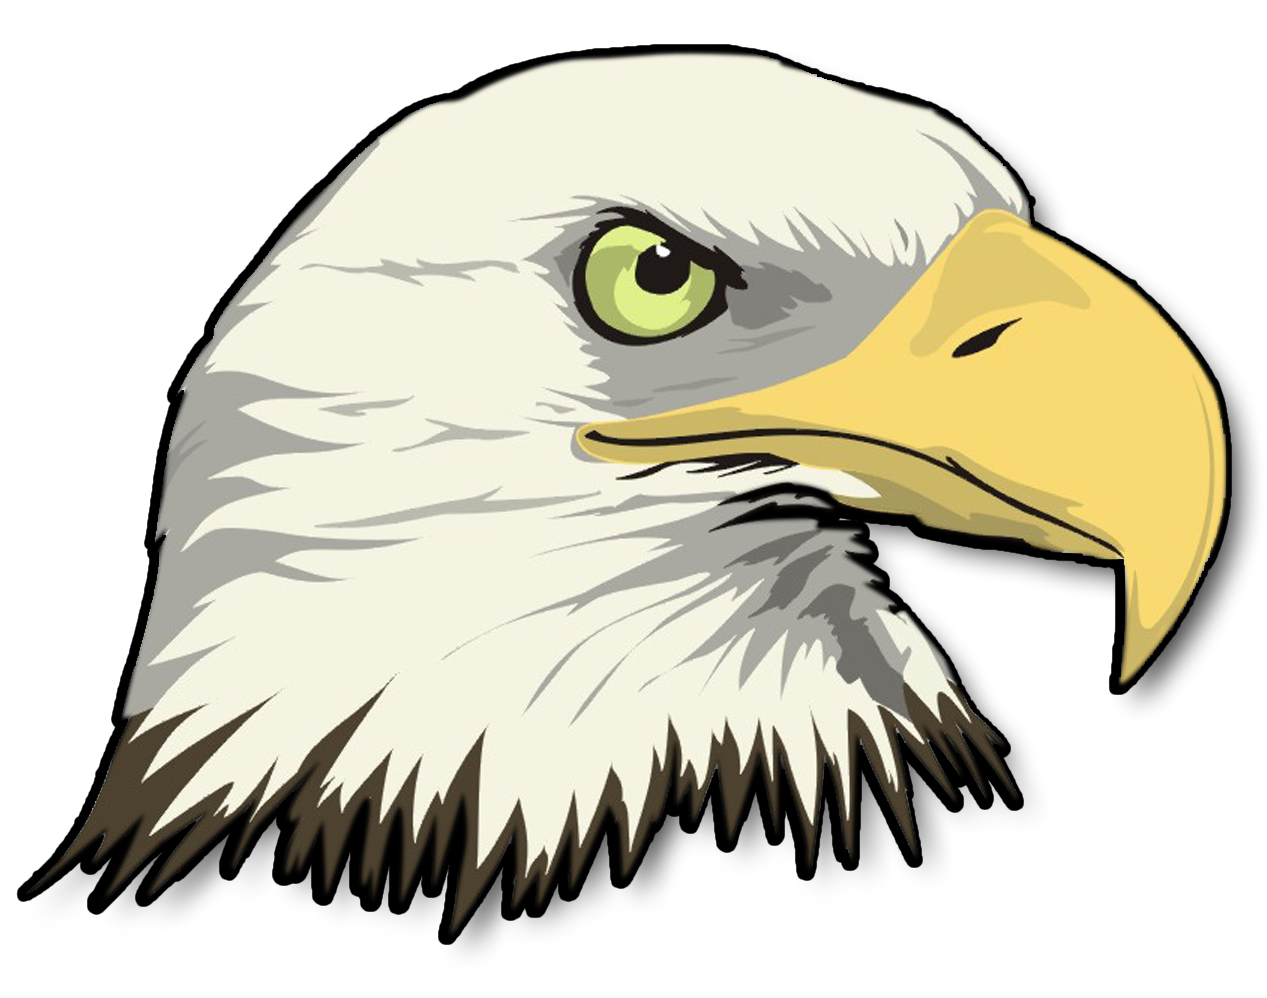 Free Eagle Cliparts, Download Free Clip Art, Free Clip Art on.